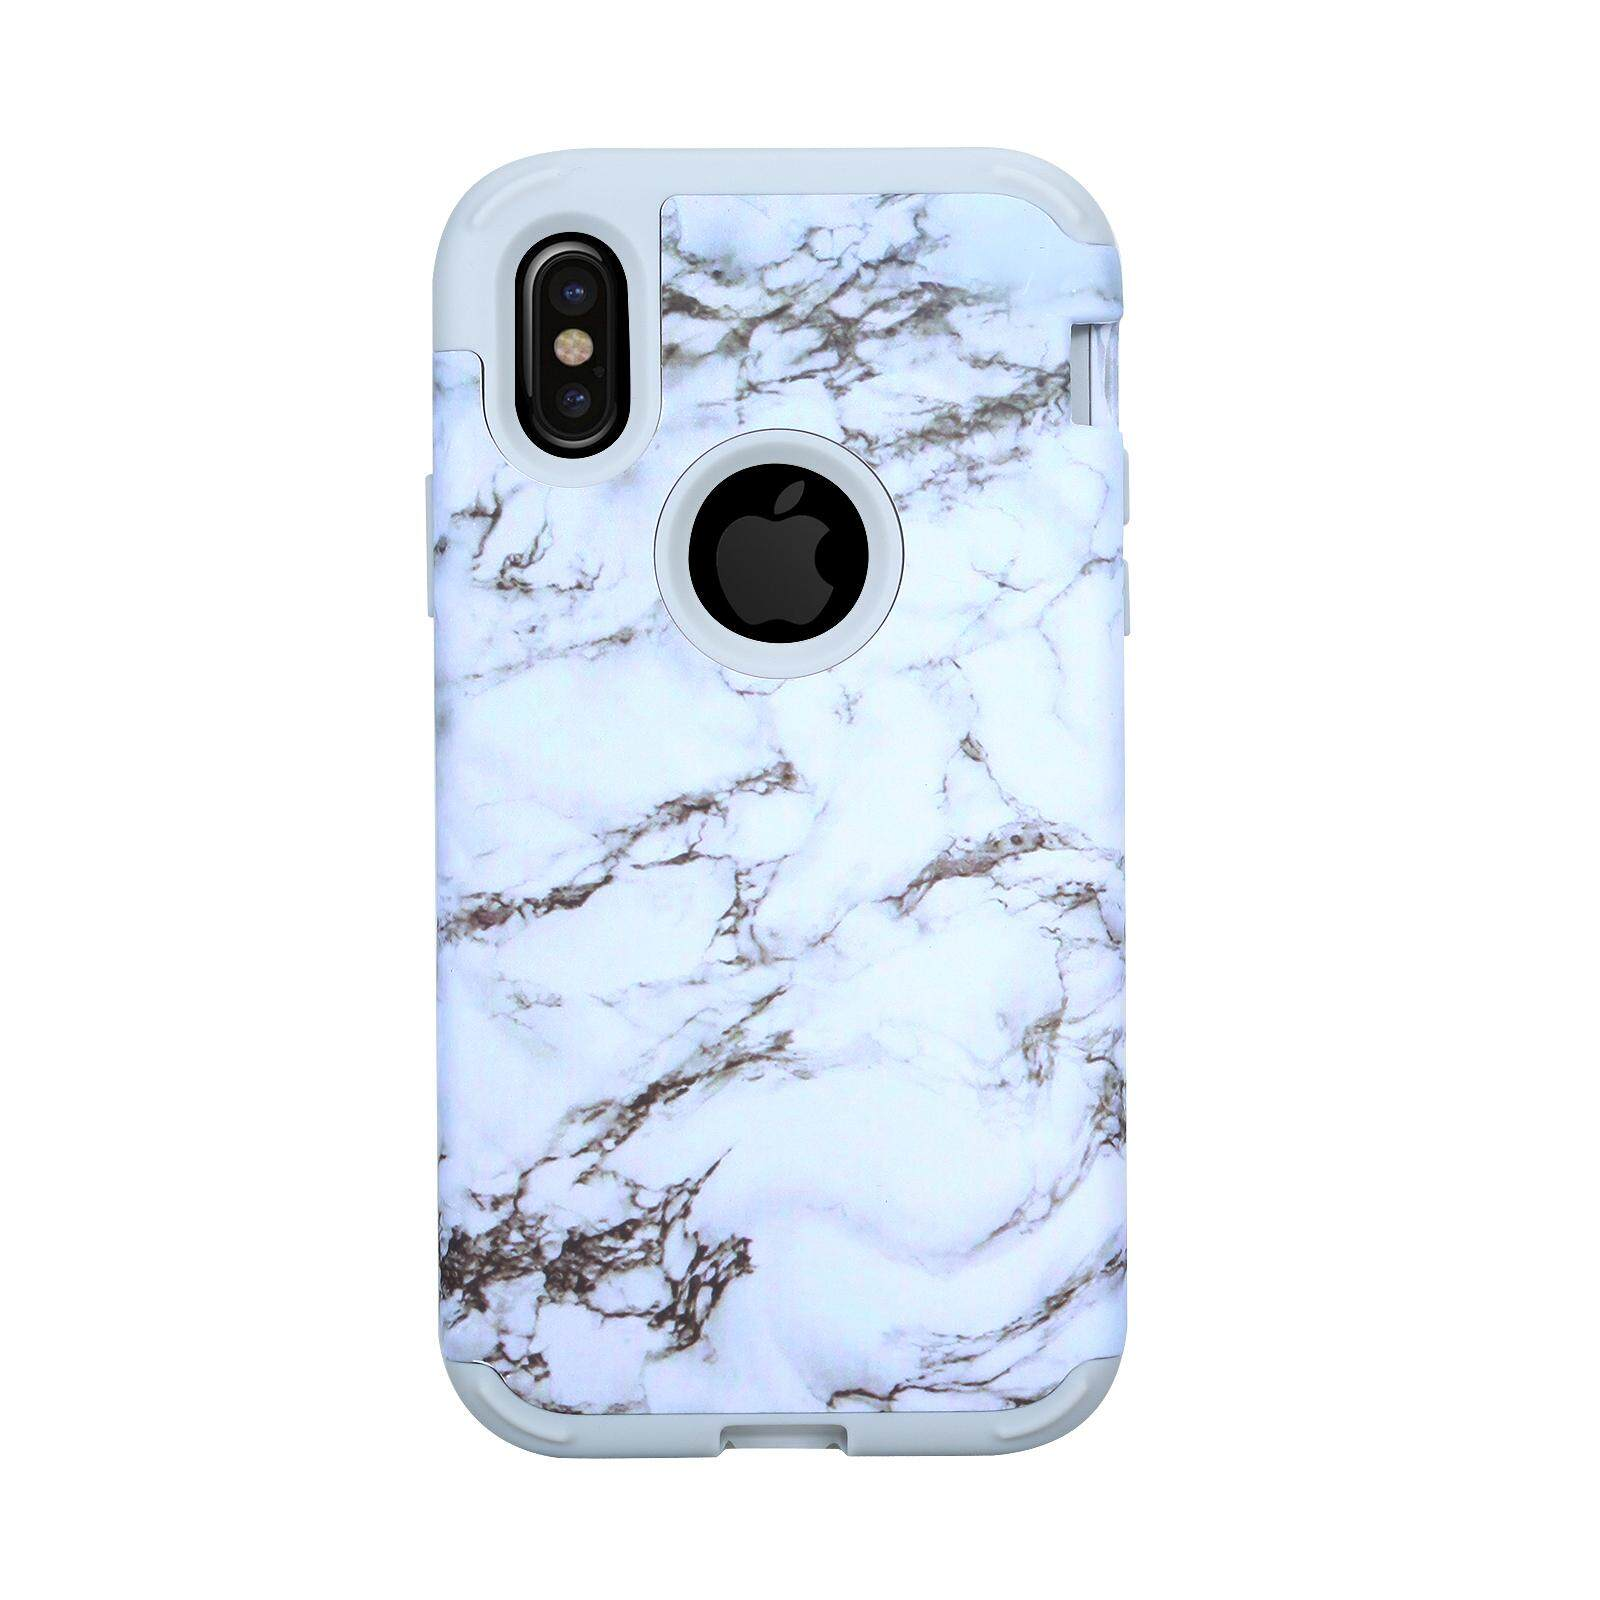 Review Phone Case For Iphone X Marble Pattern Hybrid Armor Case Hard Pc Inner Soft Silicone Shock Absorption Cover Protective Shell Black Intl Happon On China